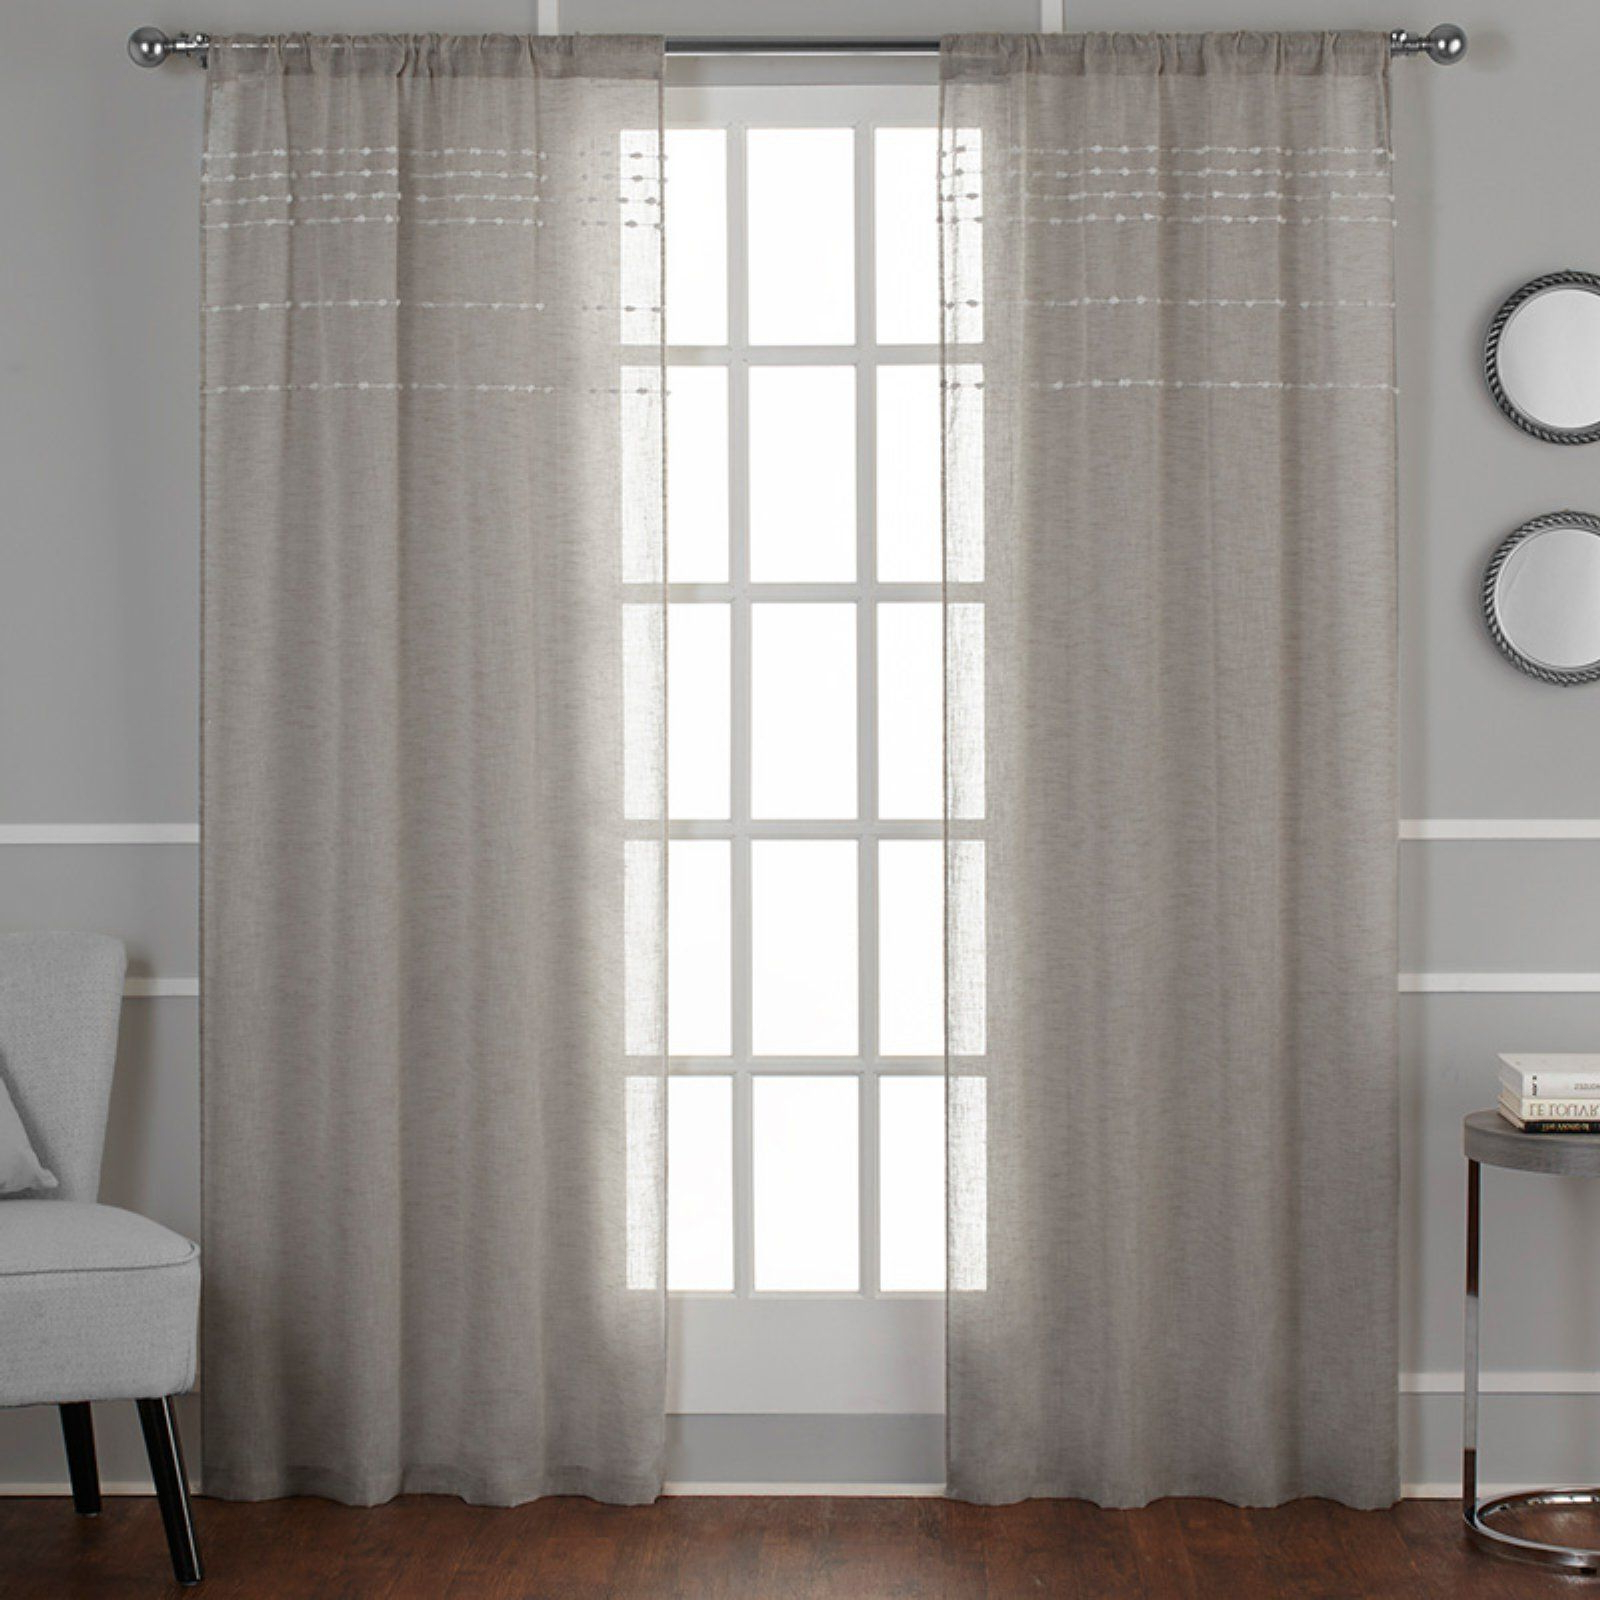 Belgian Sheer Window Curtain Panel Pairs With Rod Pocket Pertaining To Favorite Exclusive Home Davos Puff Embellished Belgian Sheer Window (View 15 of 20)